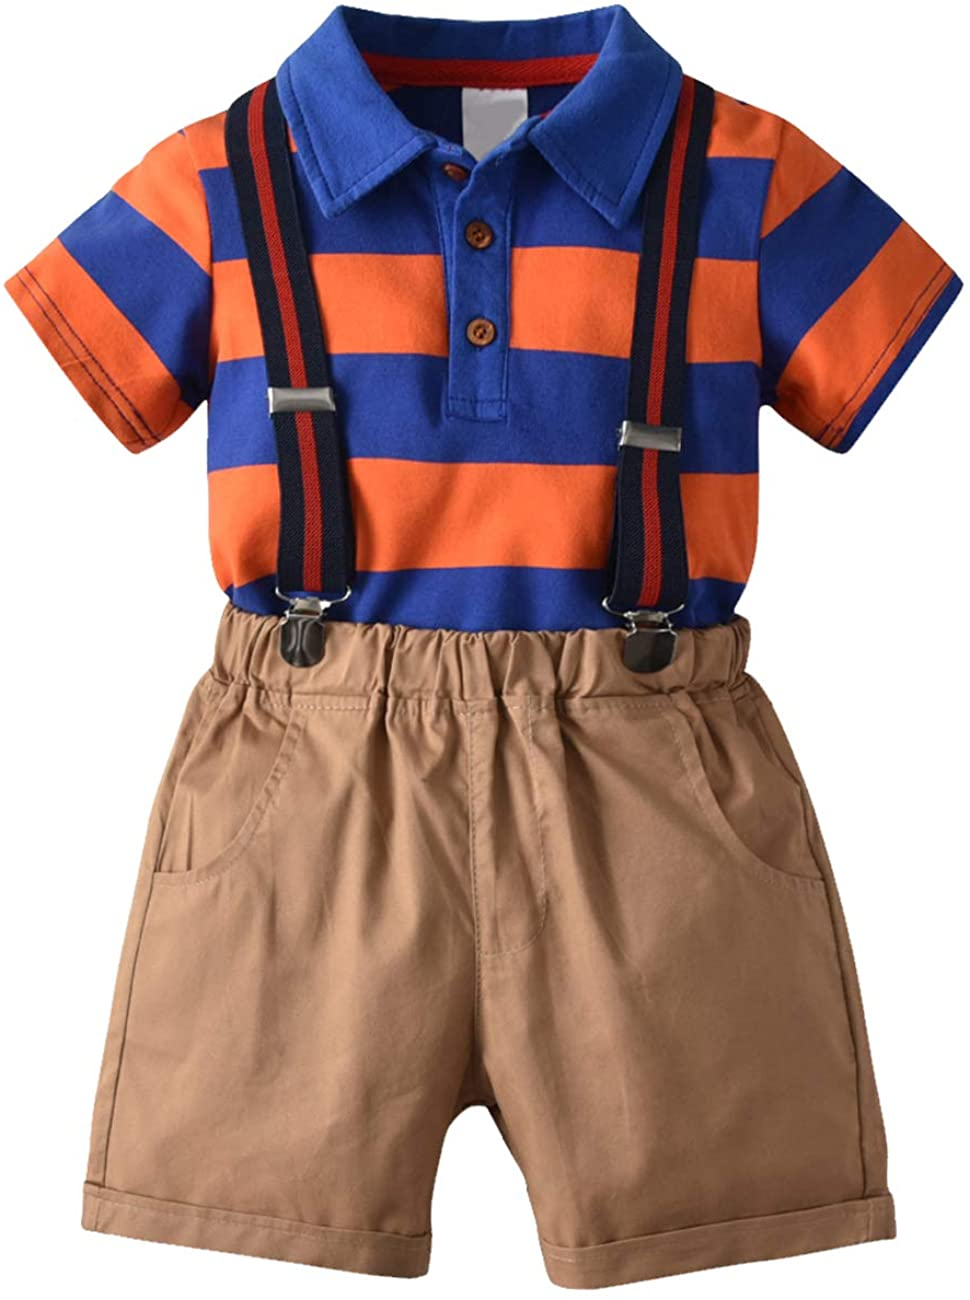 KISBINI Boys' Three Pieces Summer Clothes Set Polo Tops Shorts and Suspenders